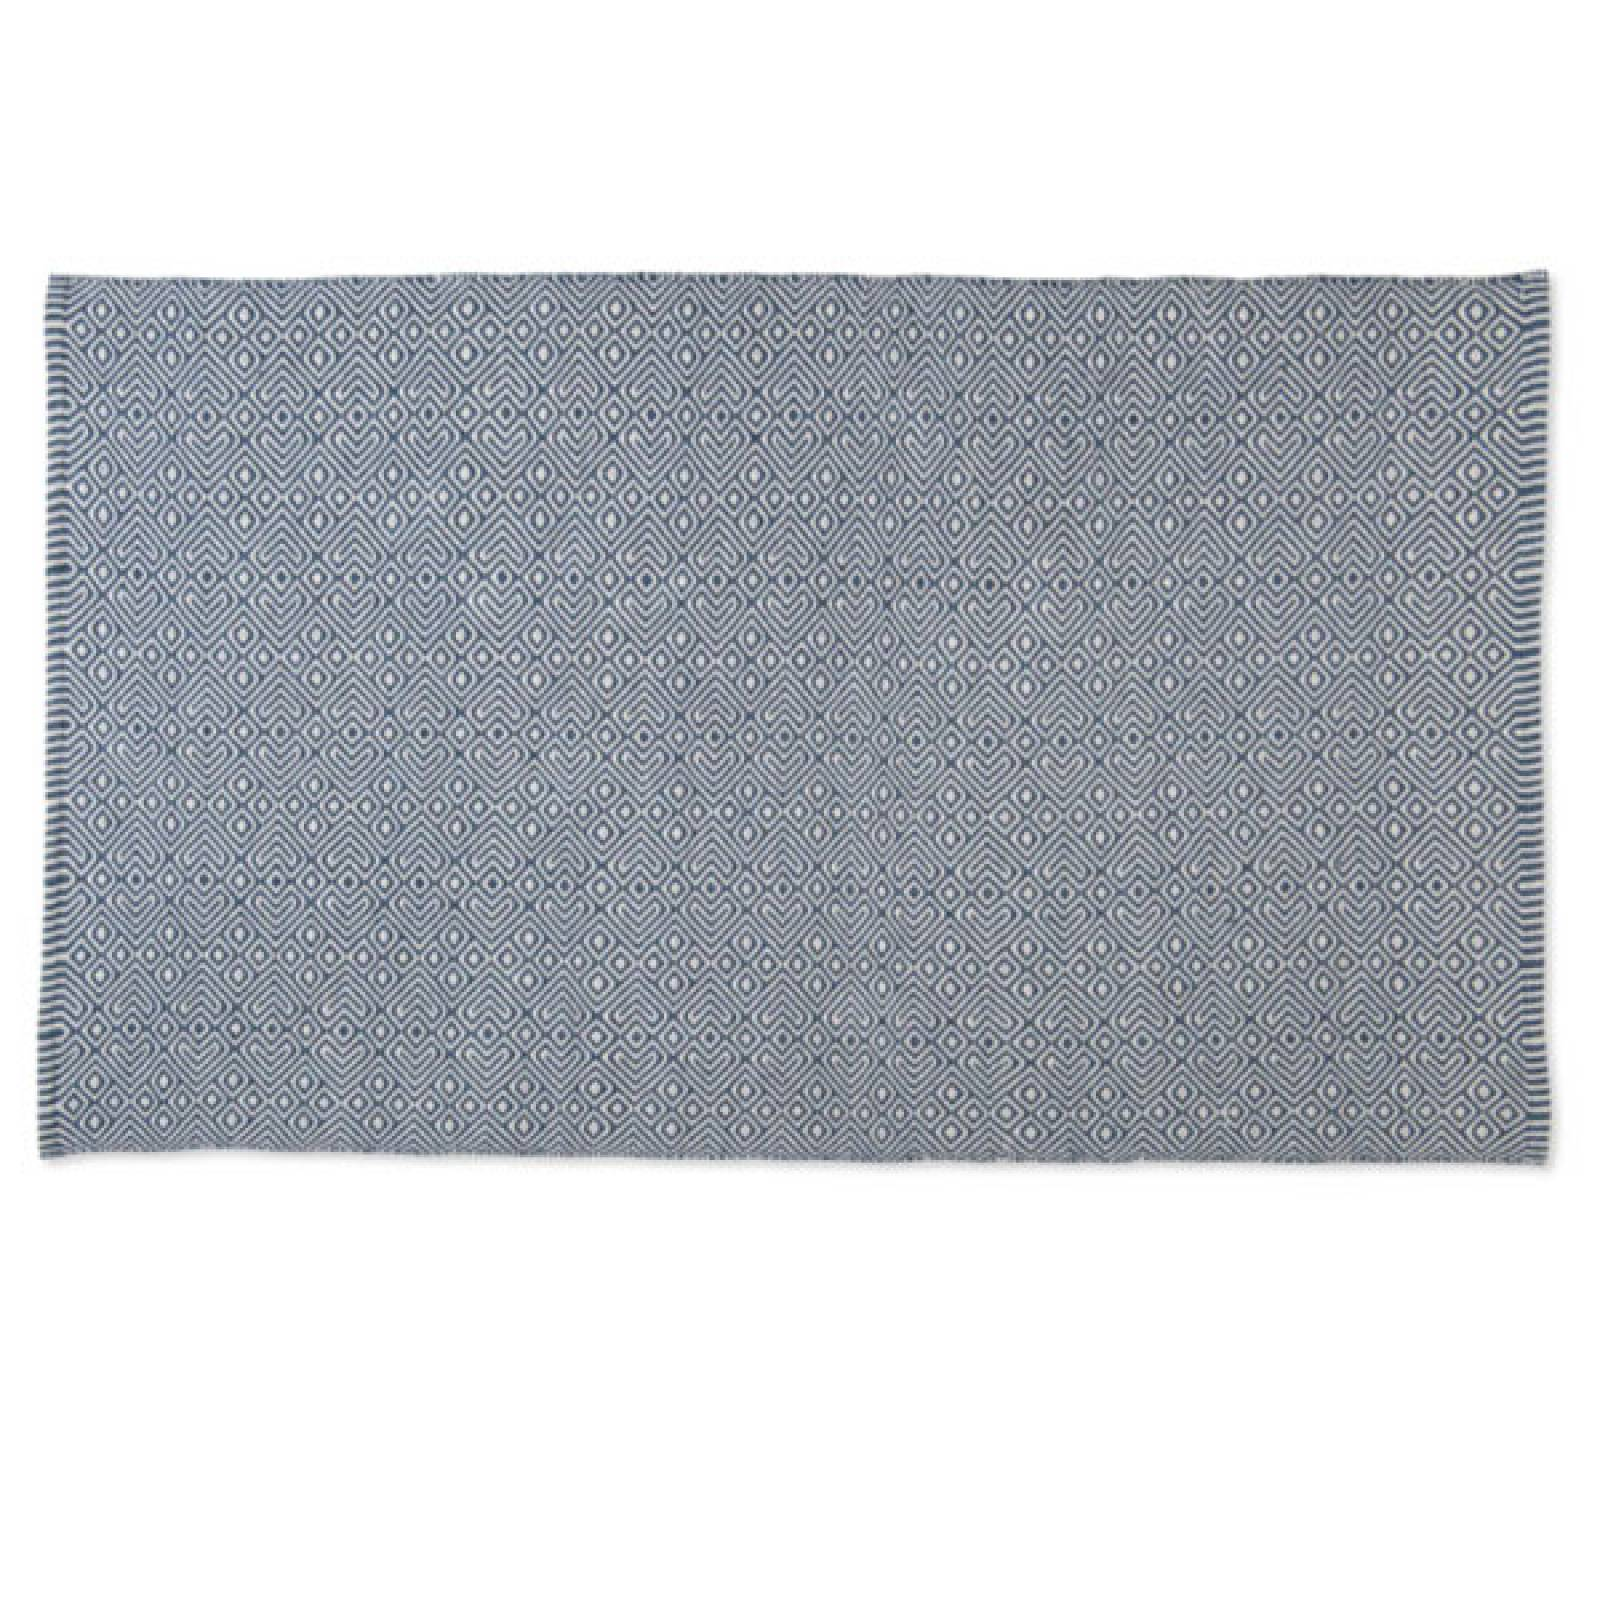 Provence NAVY 180 x 120cm Recycled Bottle Rug thumbnails